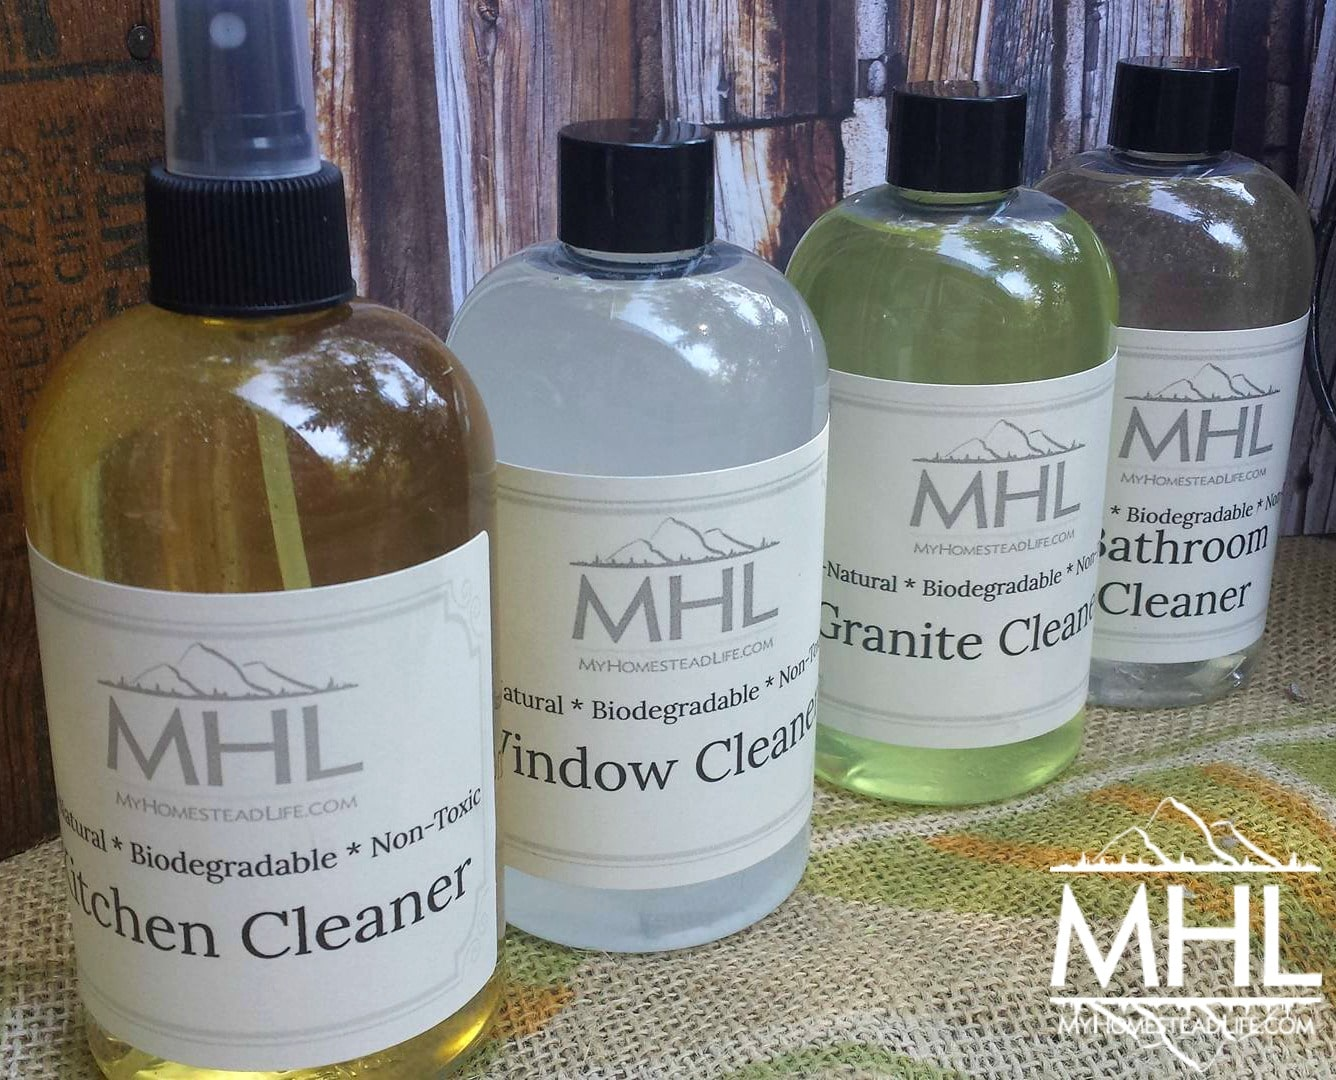 All Natural, Non-Toxic Household Cleaners Gift Pack by My Homestead Life